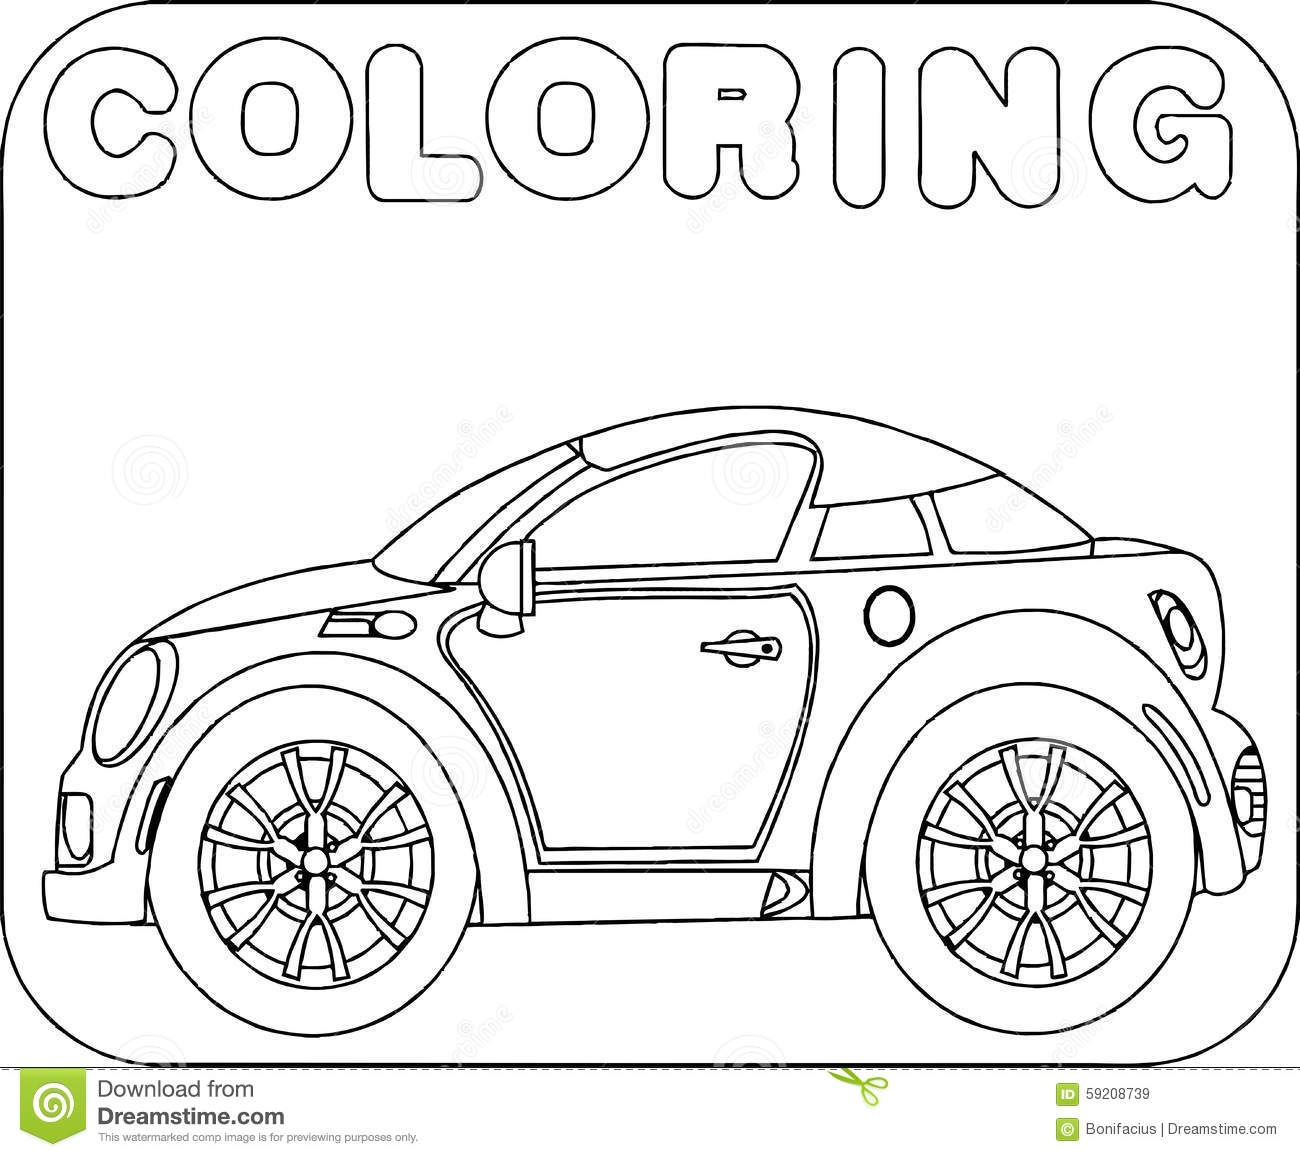 Car Themed Coloring Pages : Free classic mini cooper coloring pages